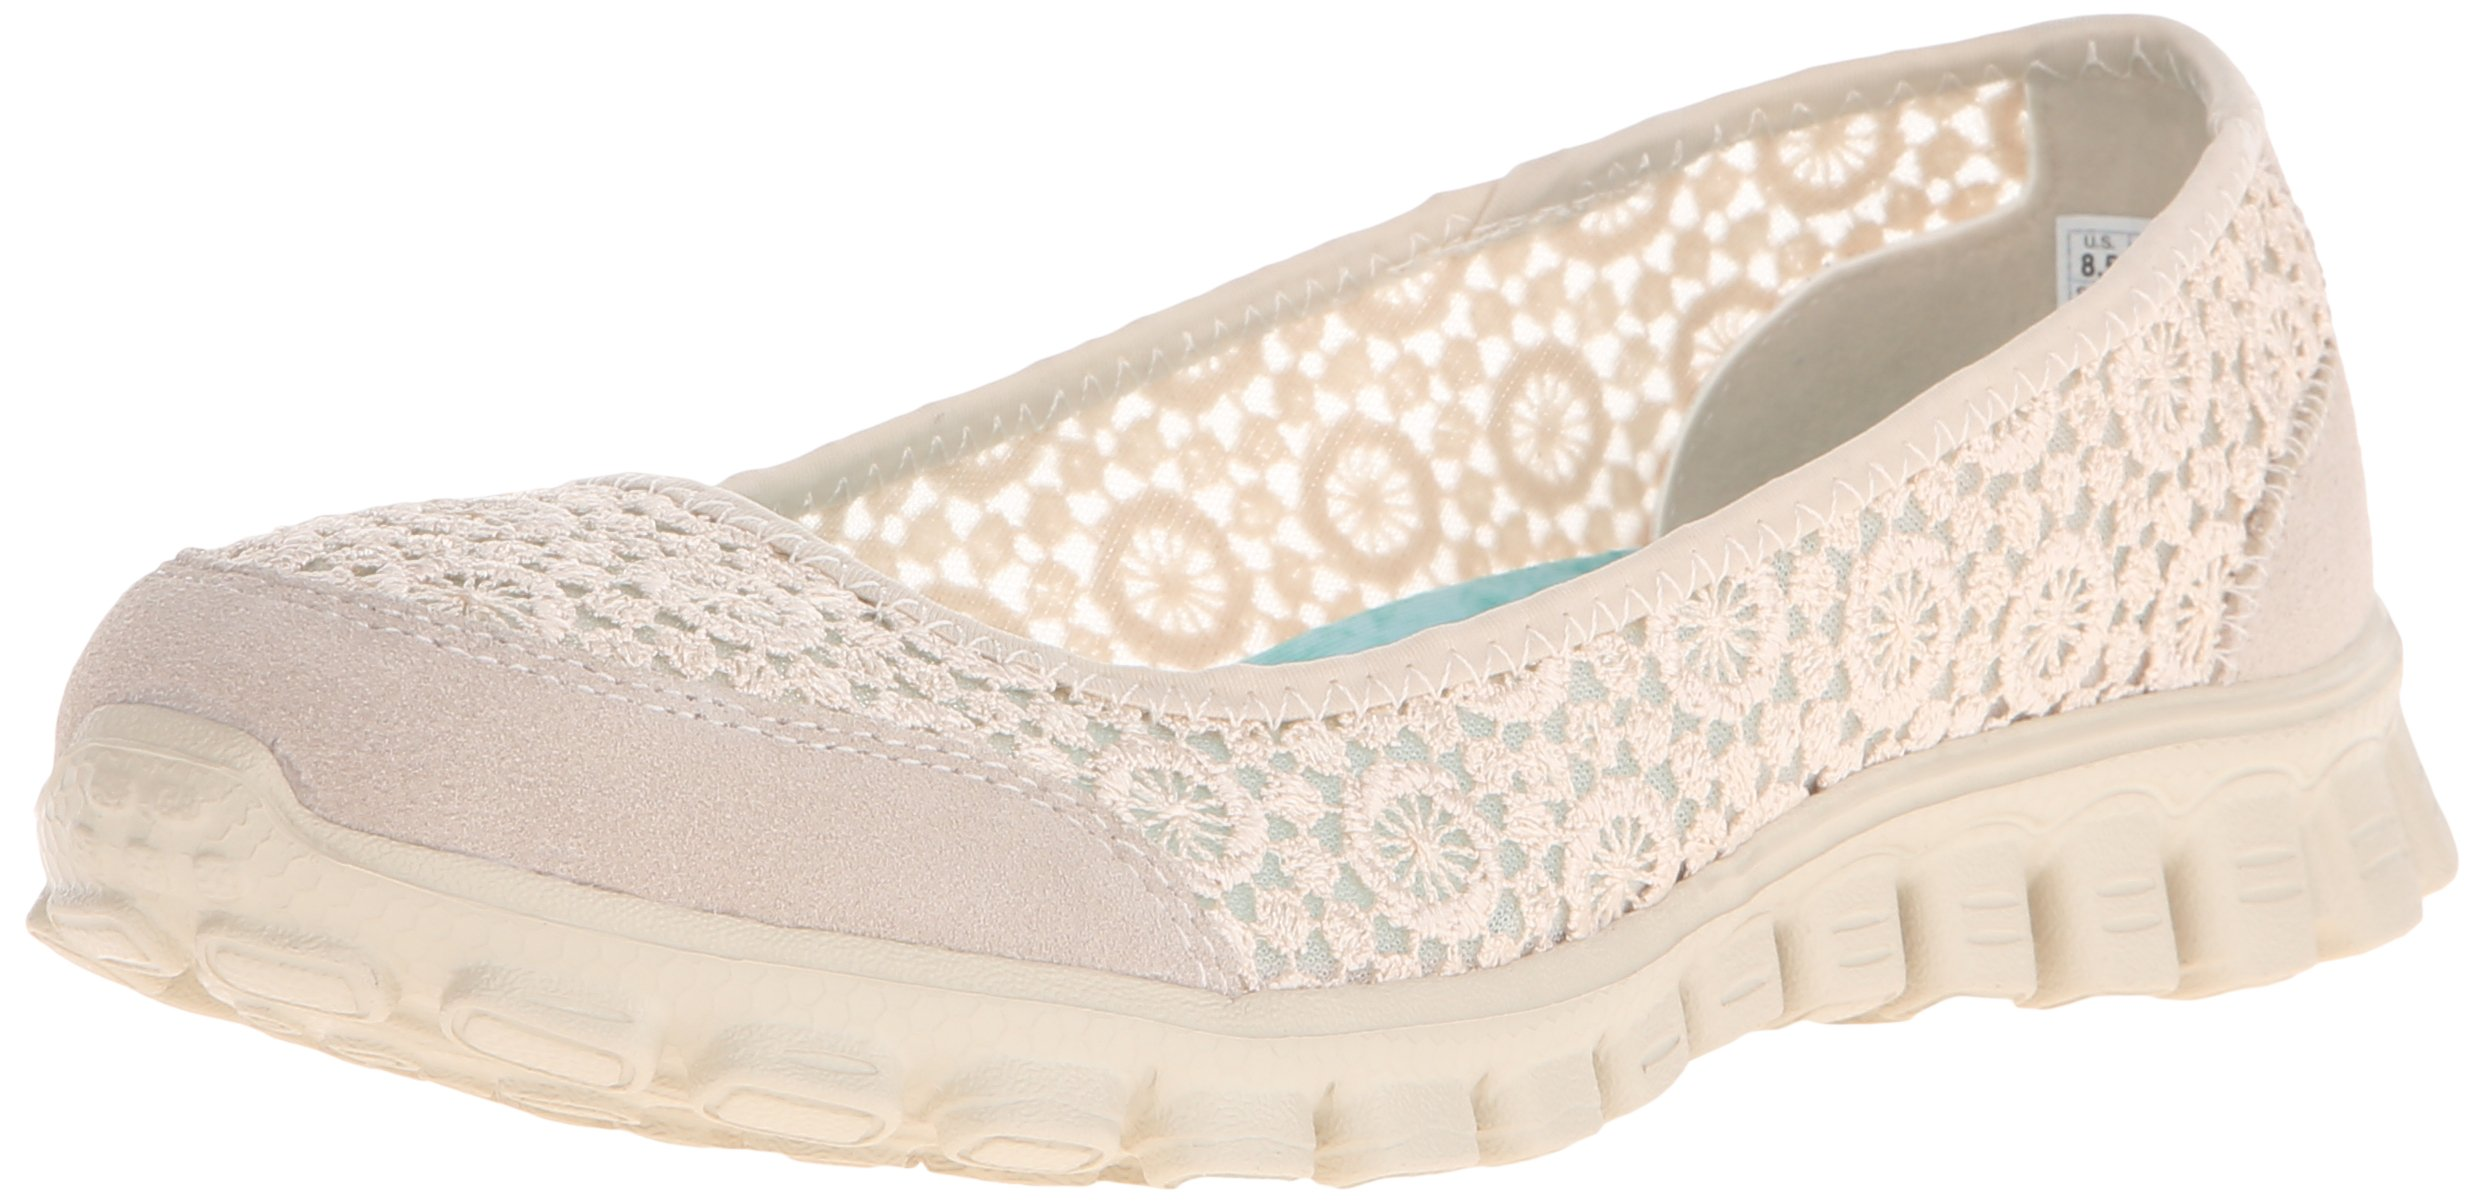 Skechers Sport Women's Ezflex 2 Flighty Flat,Natural Flighty,9.5 M US